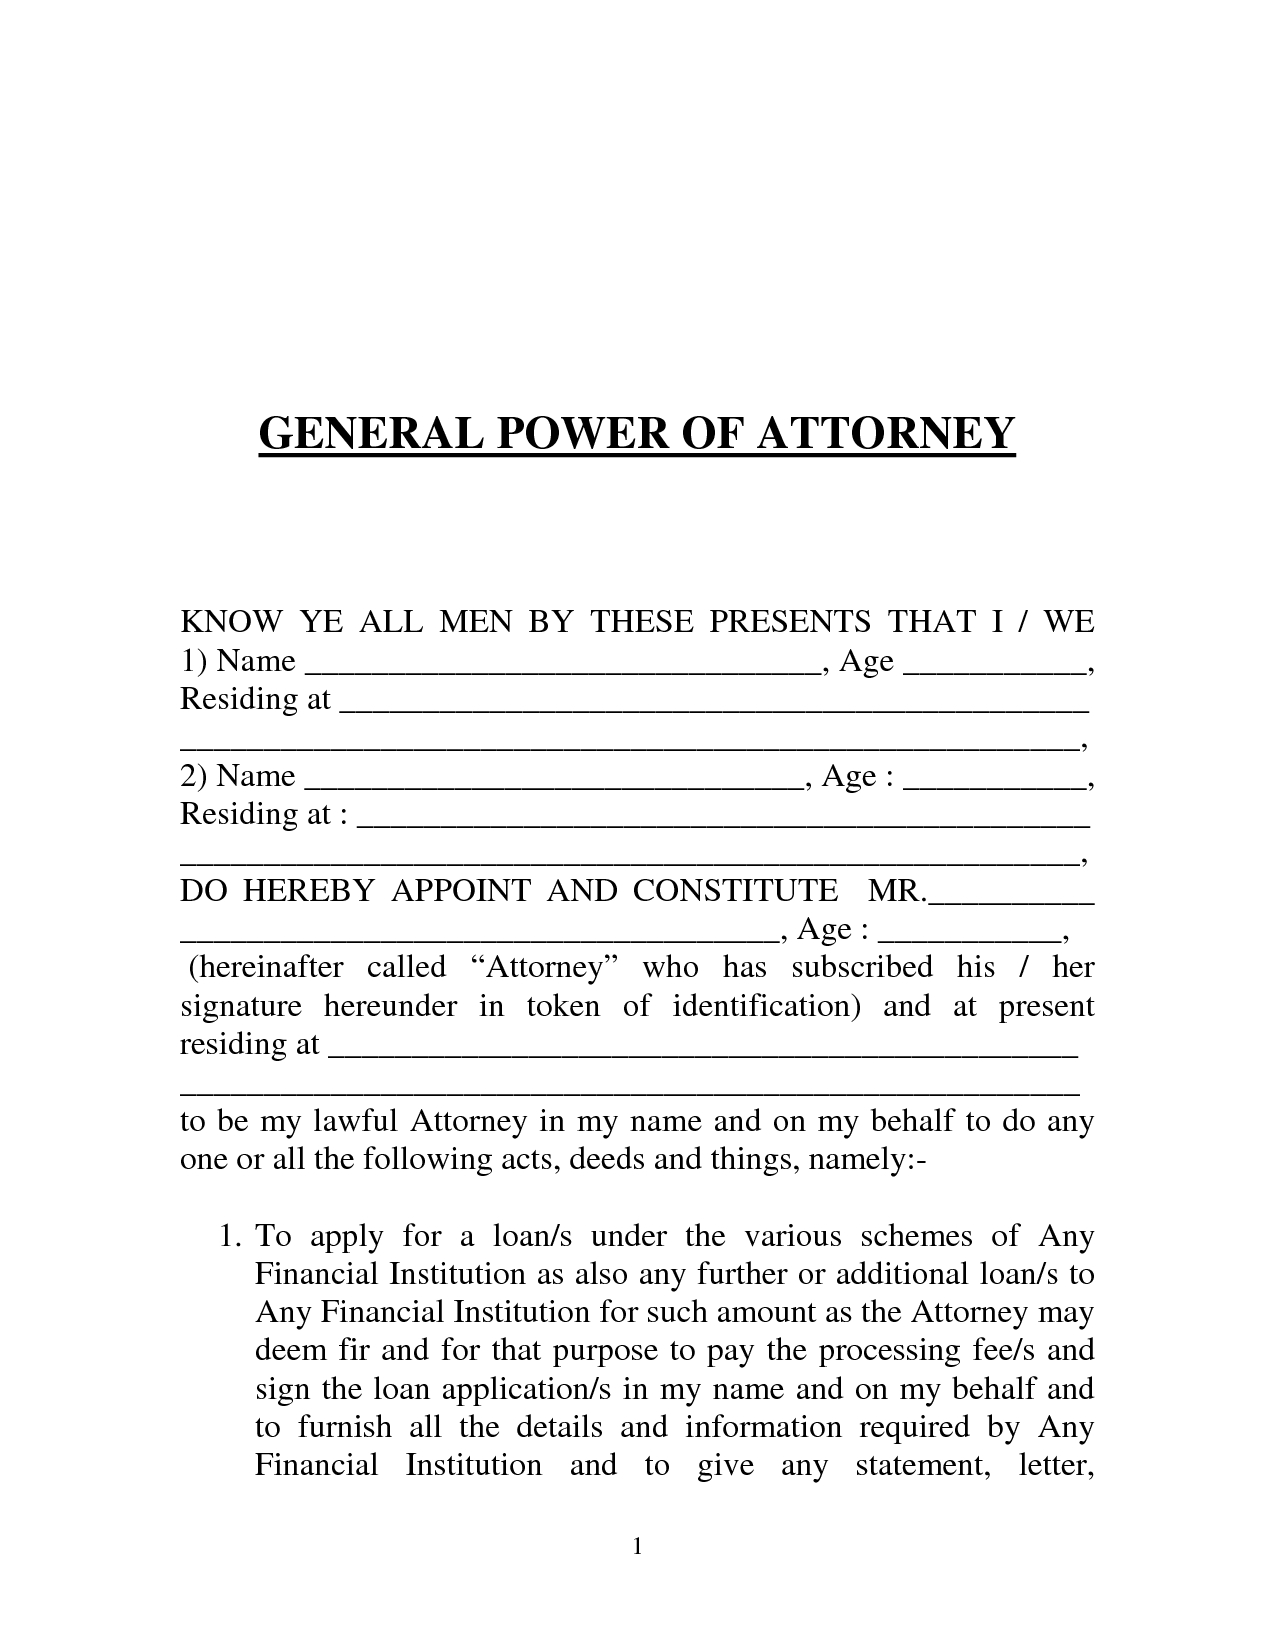 power of attorney form letter  poa letters - Unotakzi.brynnagraephoto.com